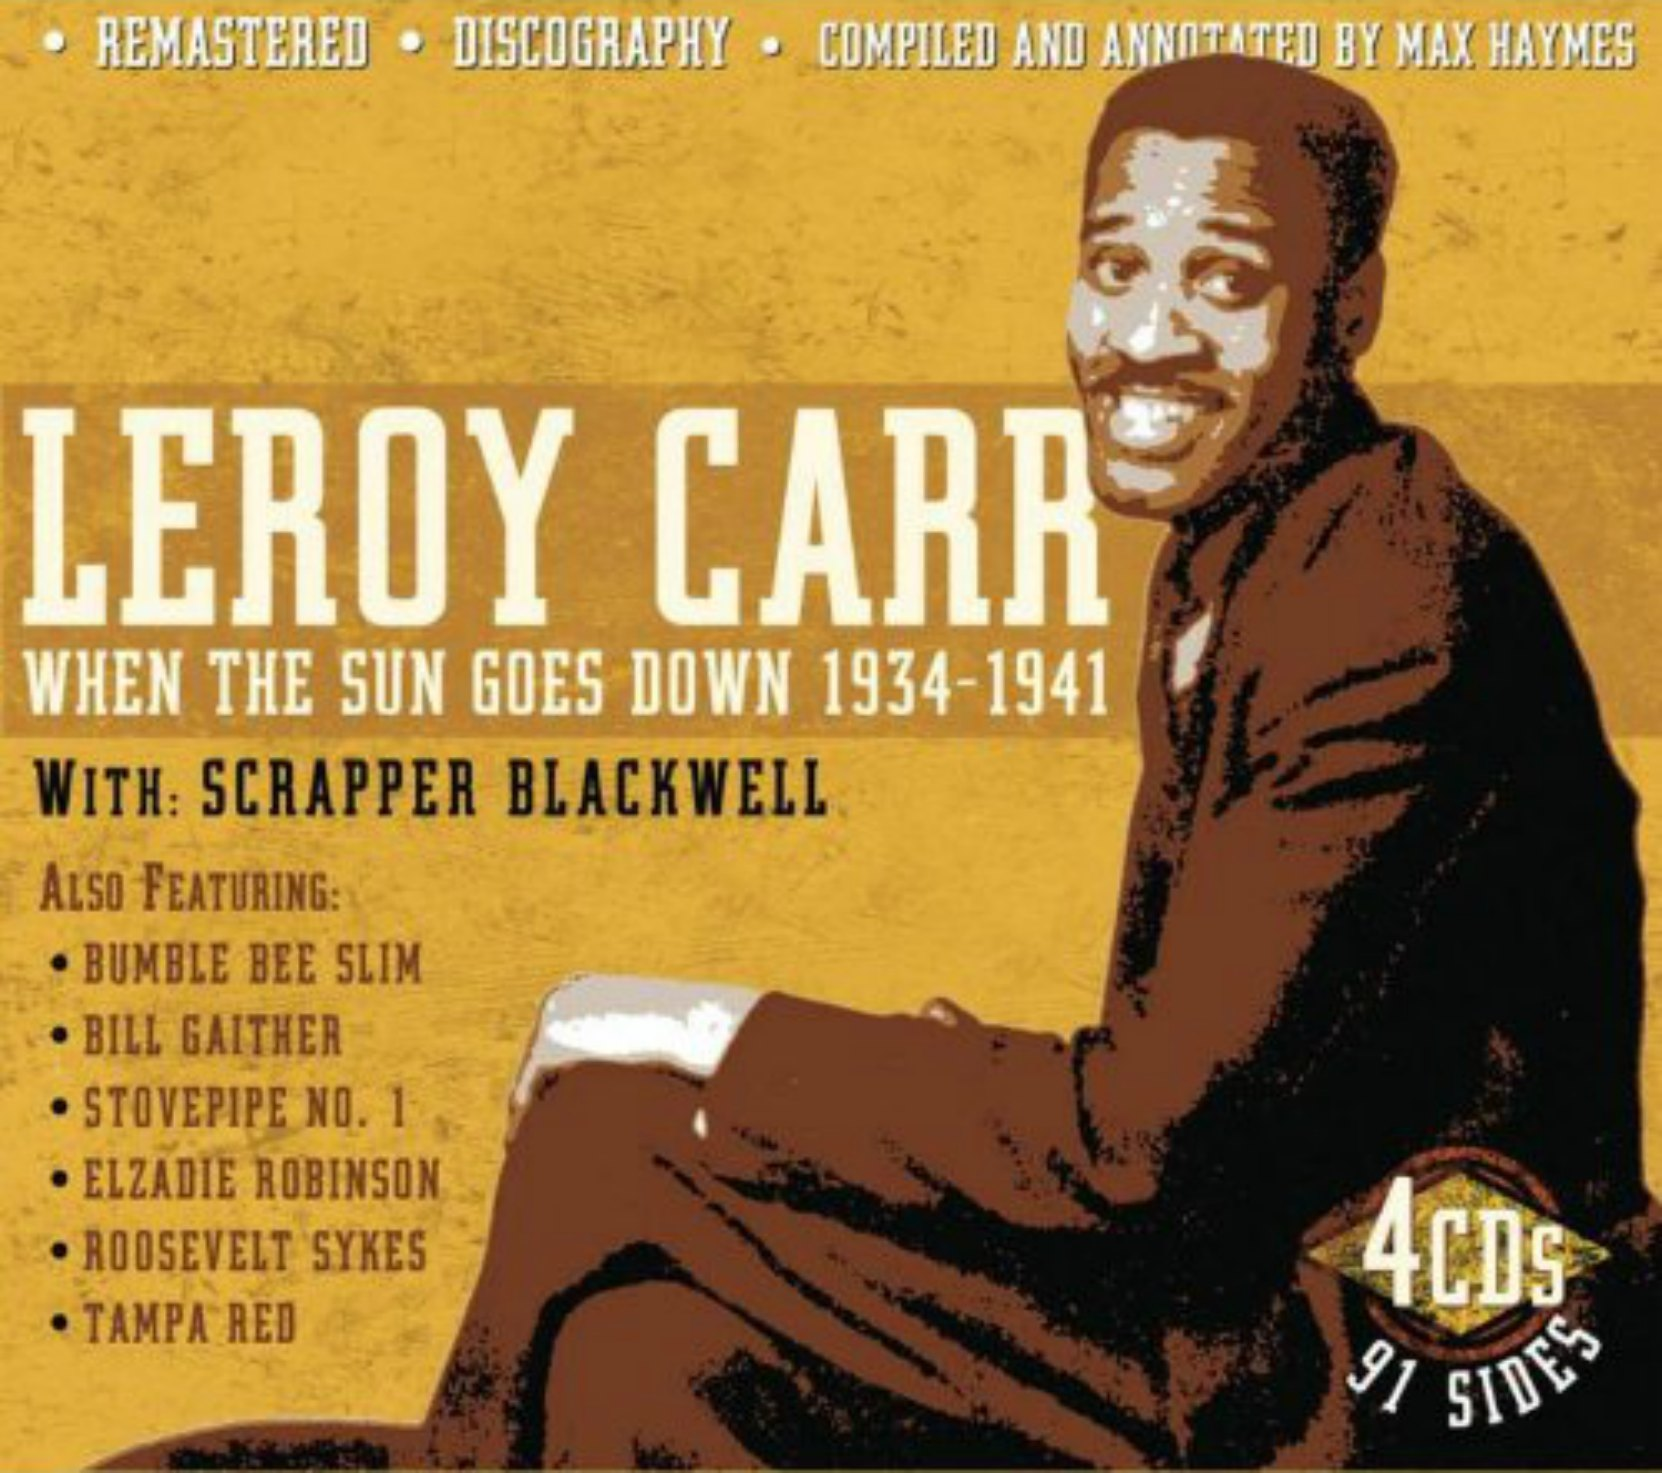 CD cover, Leroy Carr & Scrapper Blackwell- When The Sun Goes Down 1934-1941, a 4 CD box set on JSP Records